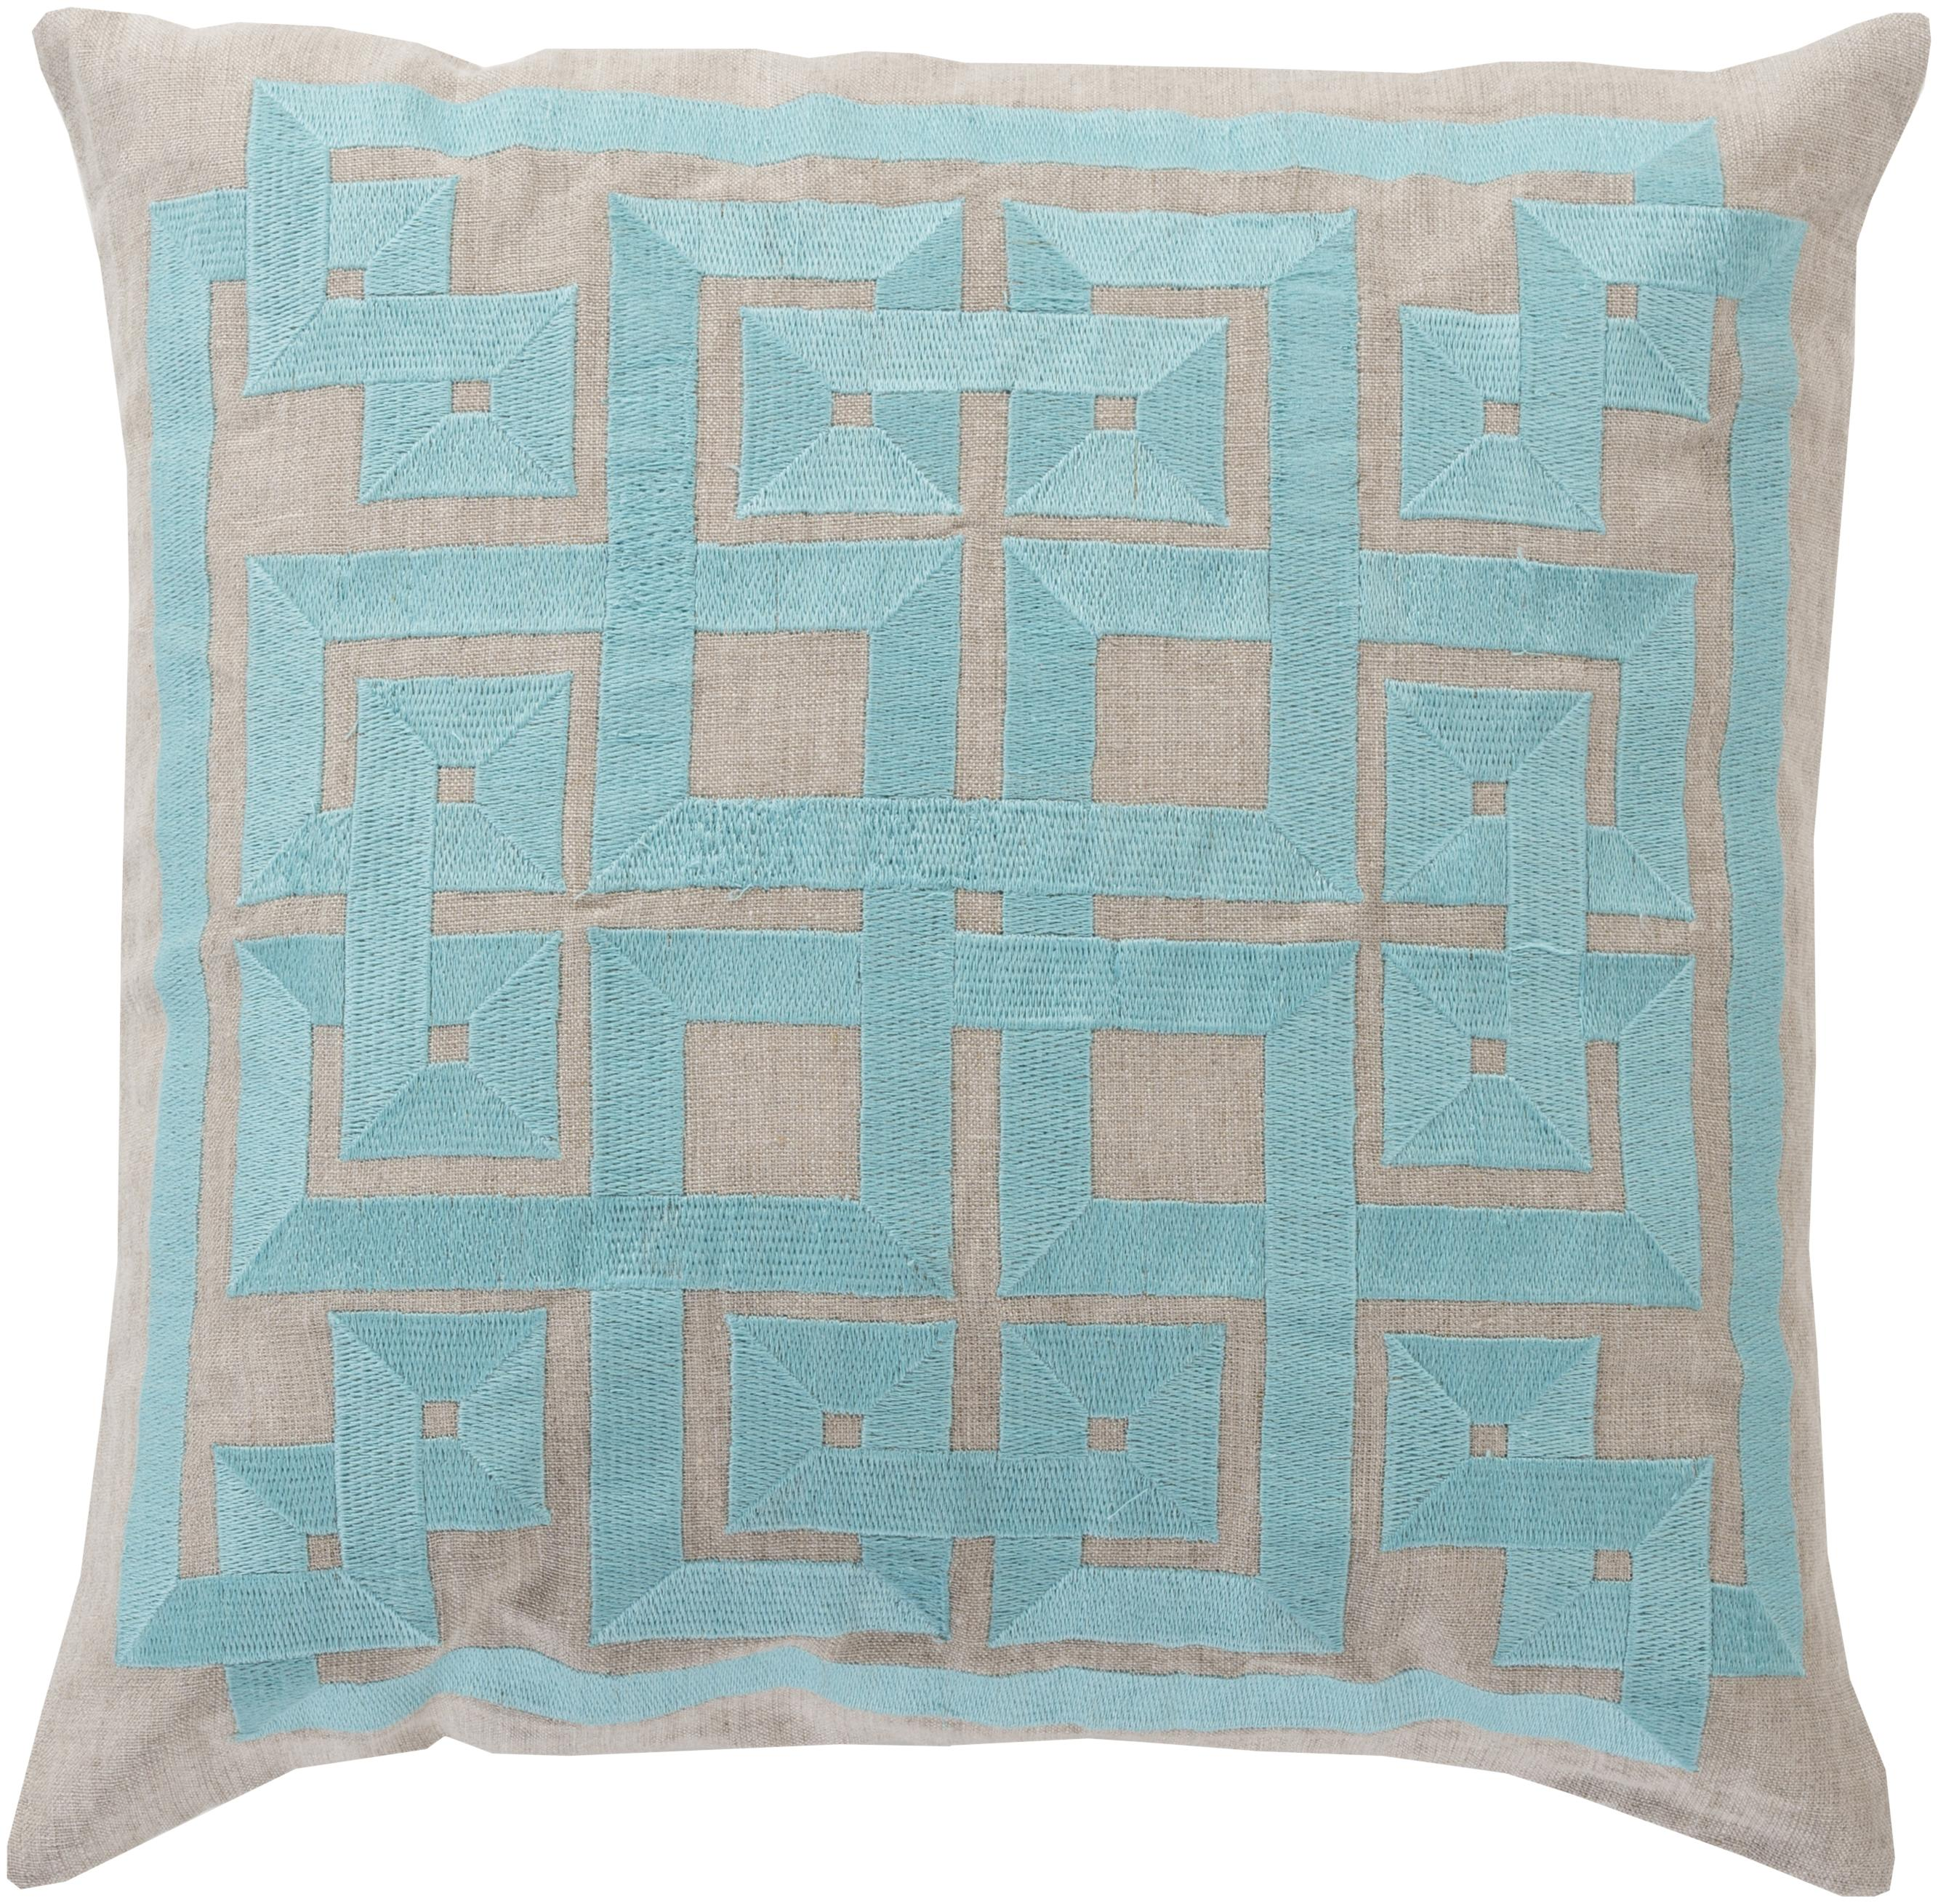 "Surya Pillows 20"" x 20"" Pillow - Item Number: LD009-2020P"